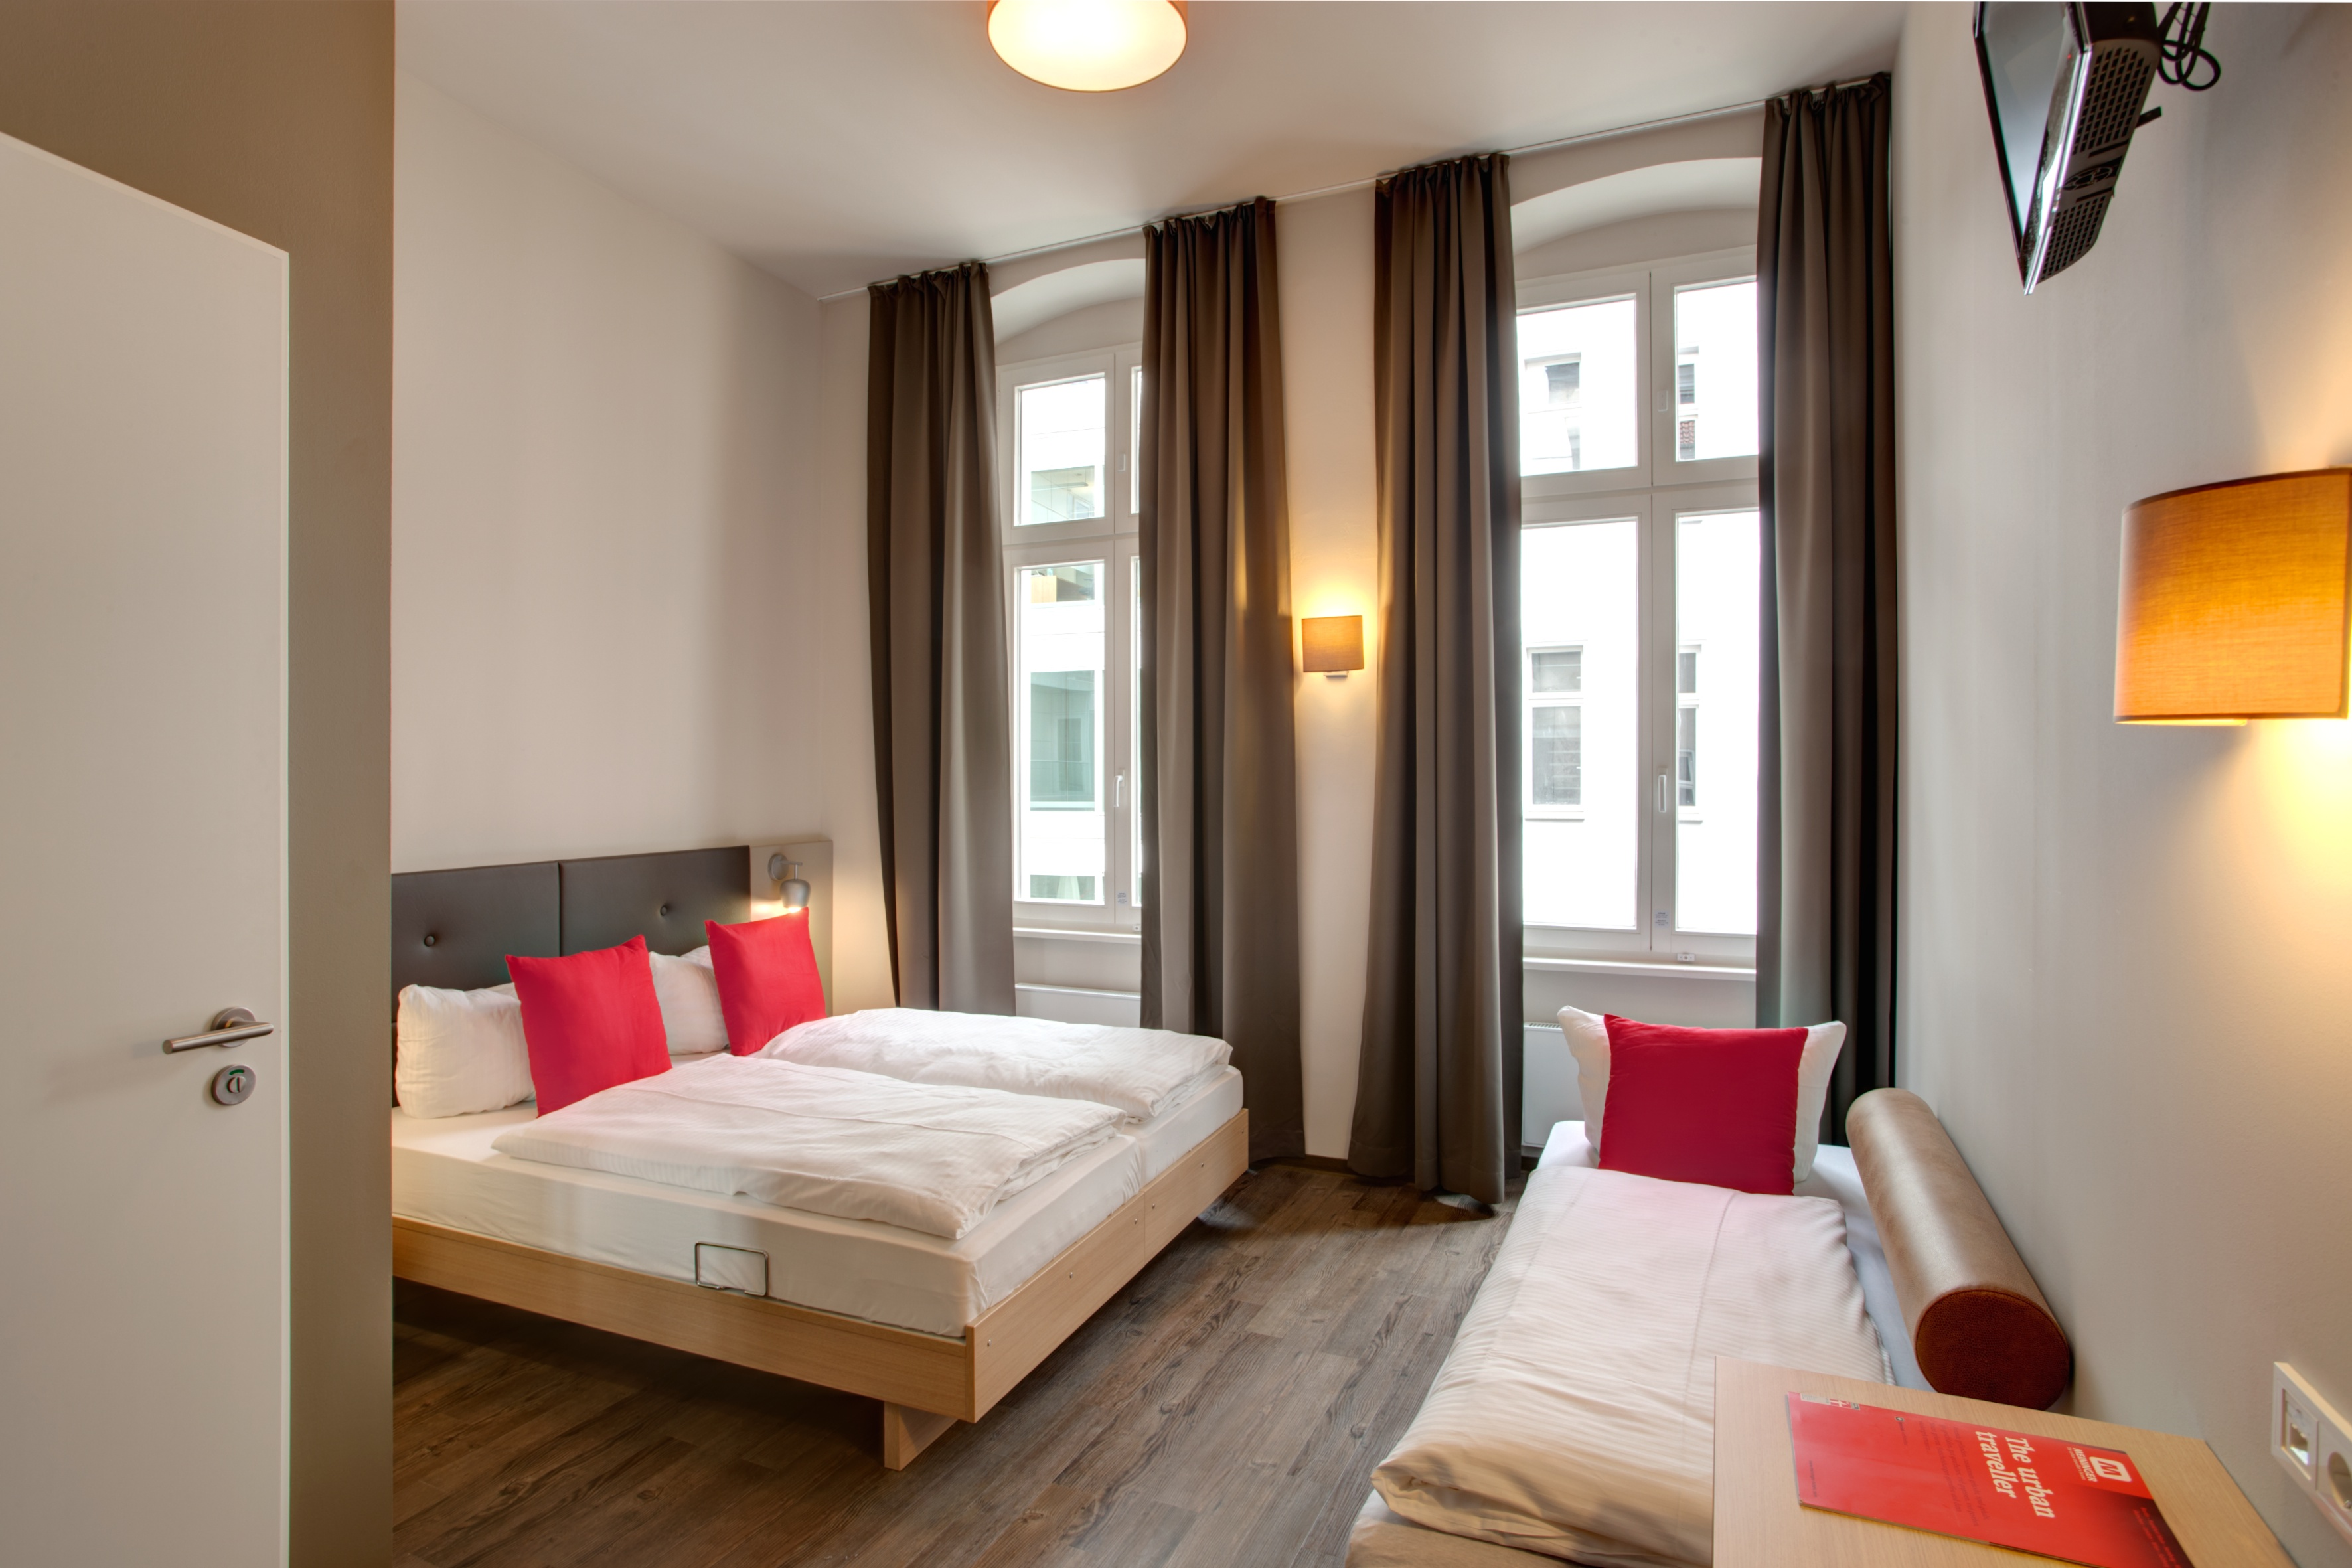 meininger hotel berlin mitte humboldthaus g nstig modern zentral. Black Bedroom Furniture Sets. Home Design Ideas